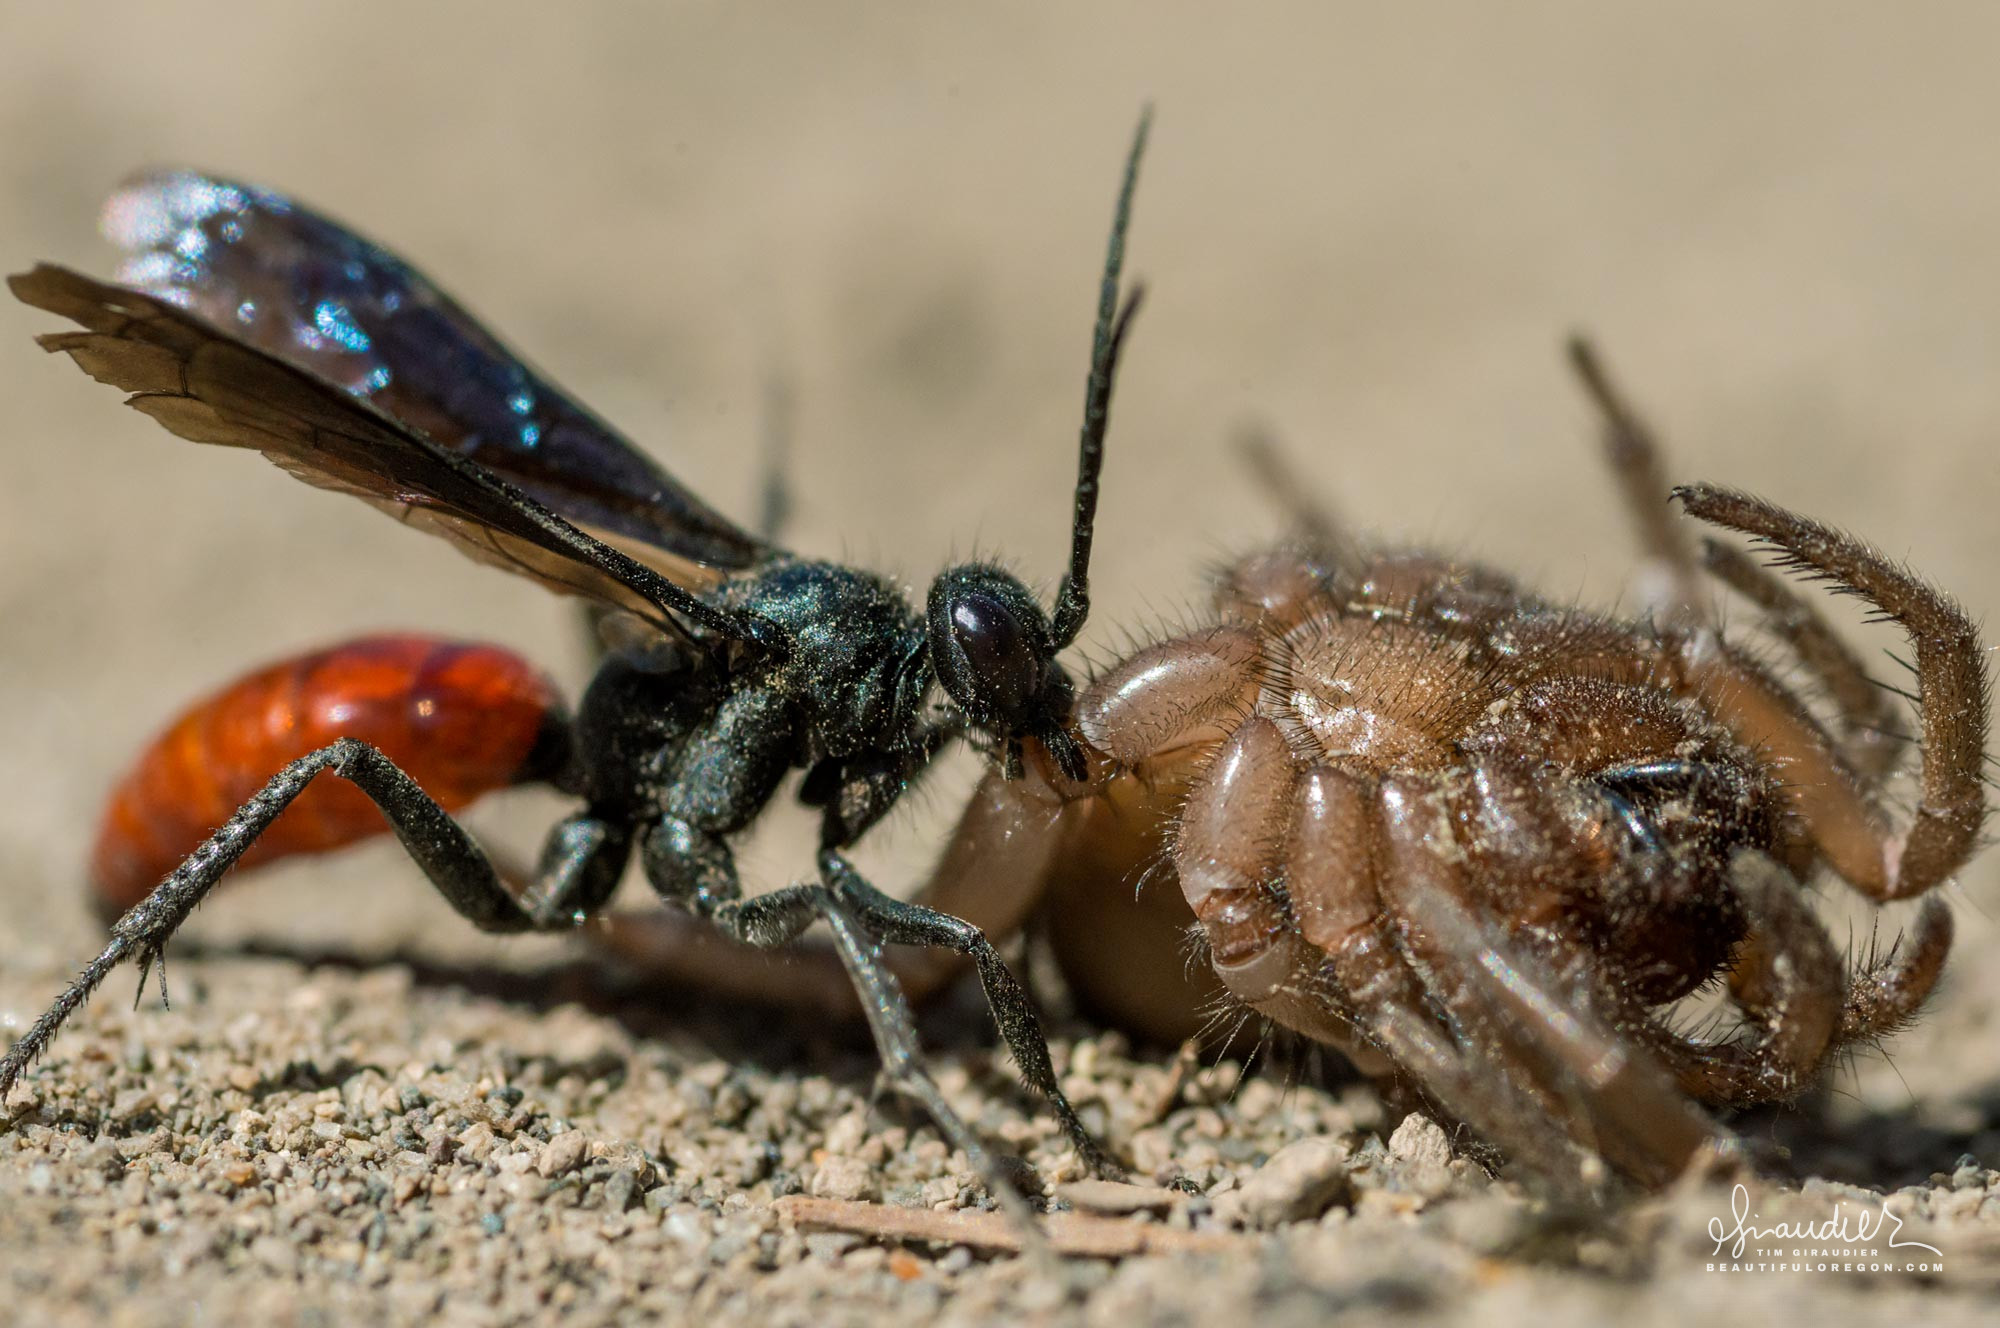 A spider wasp (family Pompilidae) drags pray to its burrow. Smith Rock State Park. Deschtues County, Central Oregon.